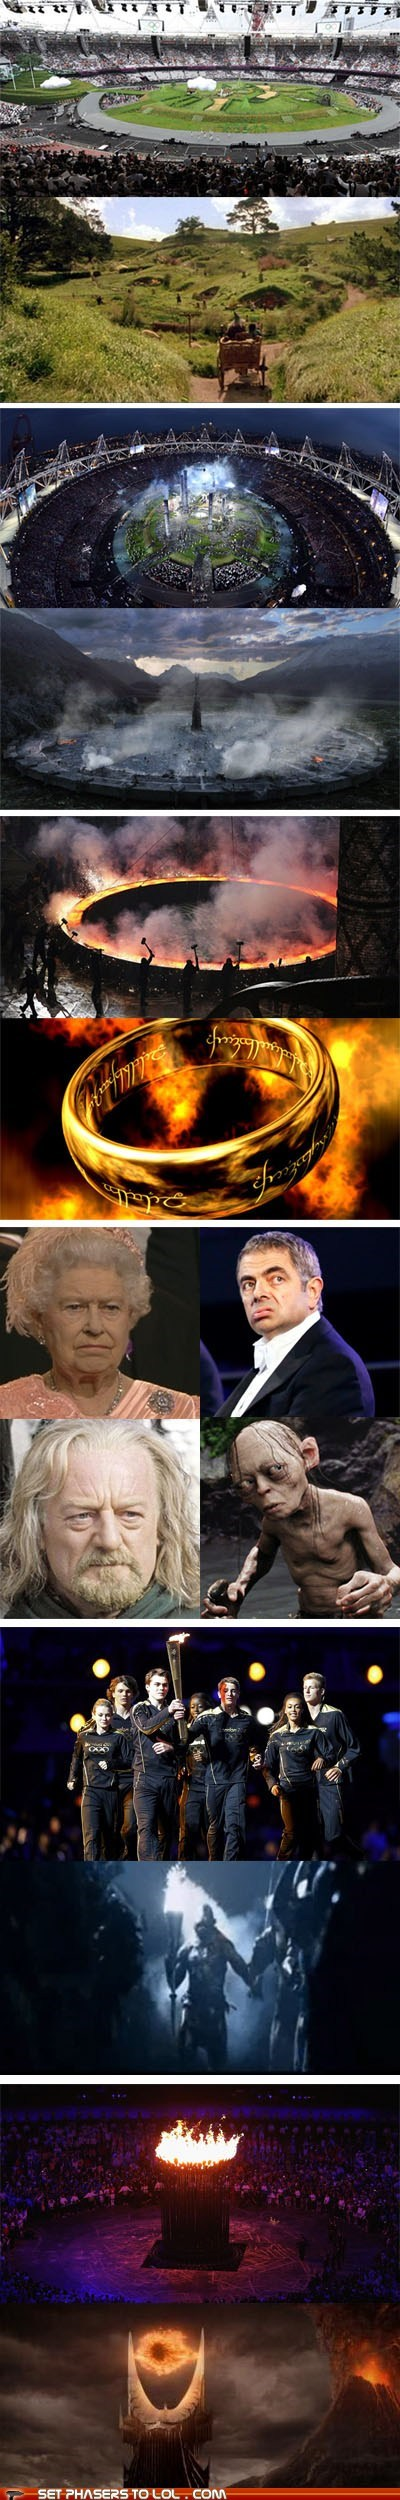 best of the week,gollum,London 2012,Lord of The Ring,Lord of the Rings,mordor,mr-bean,olympics,opening ceremony,Queen Elizabeth II,rowan atkinson,sauron,similar,Sméagol,The Shire,totally looks like